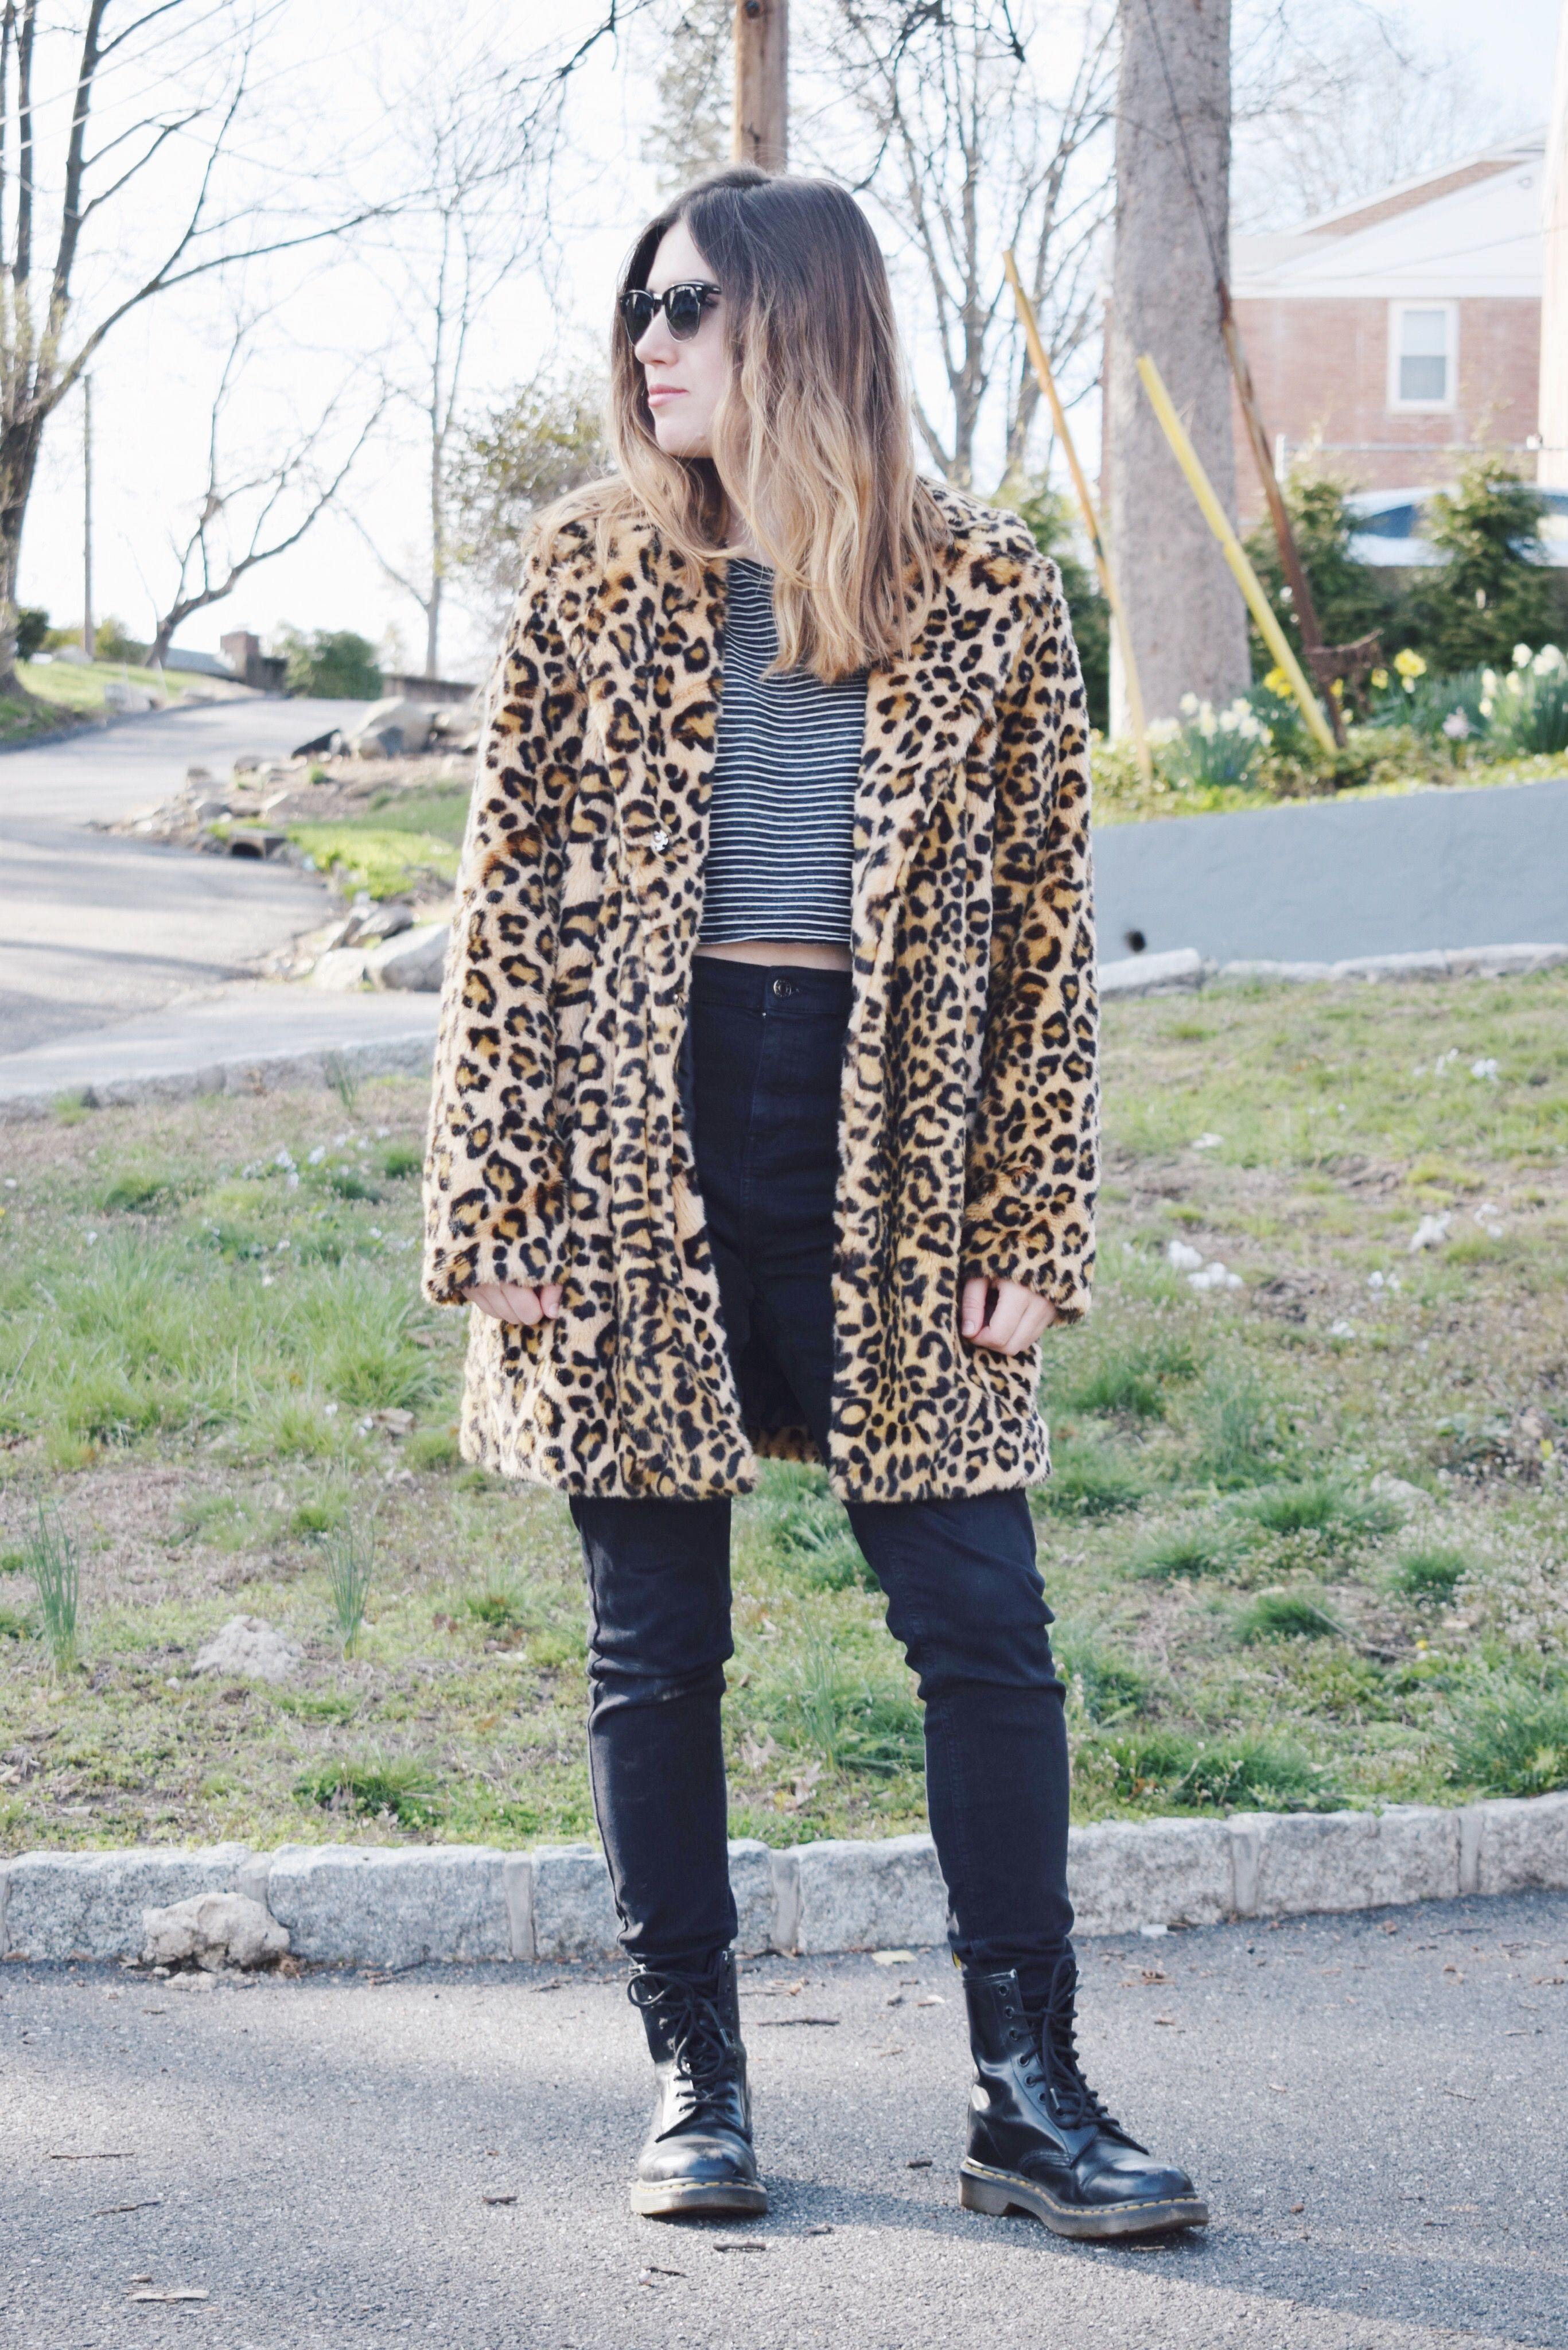 How to Mix Stripes with Leopard Print - No Repeats or Hesitations